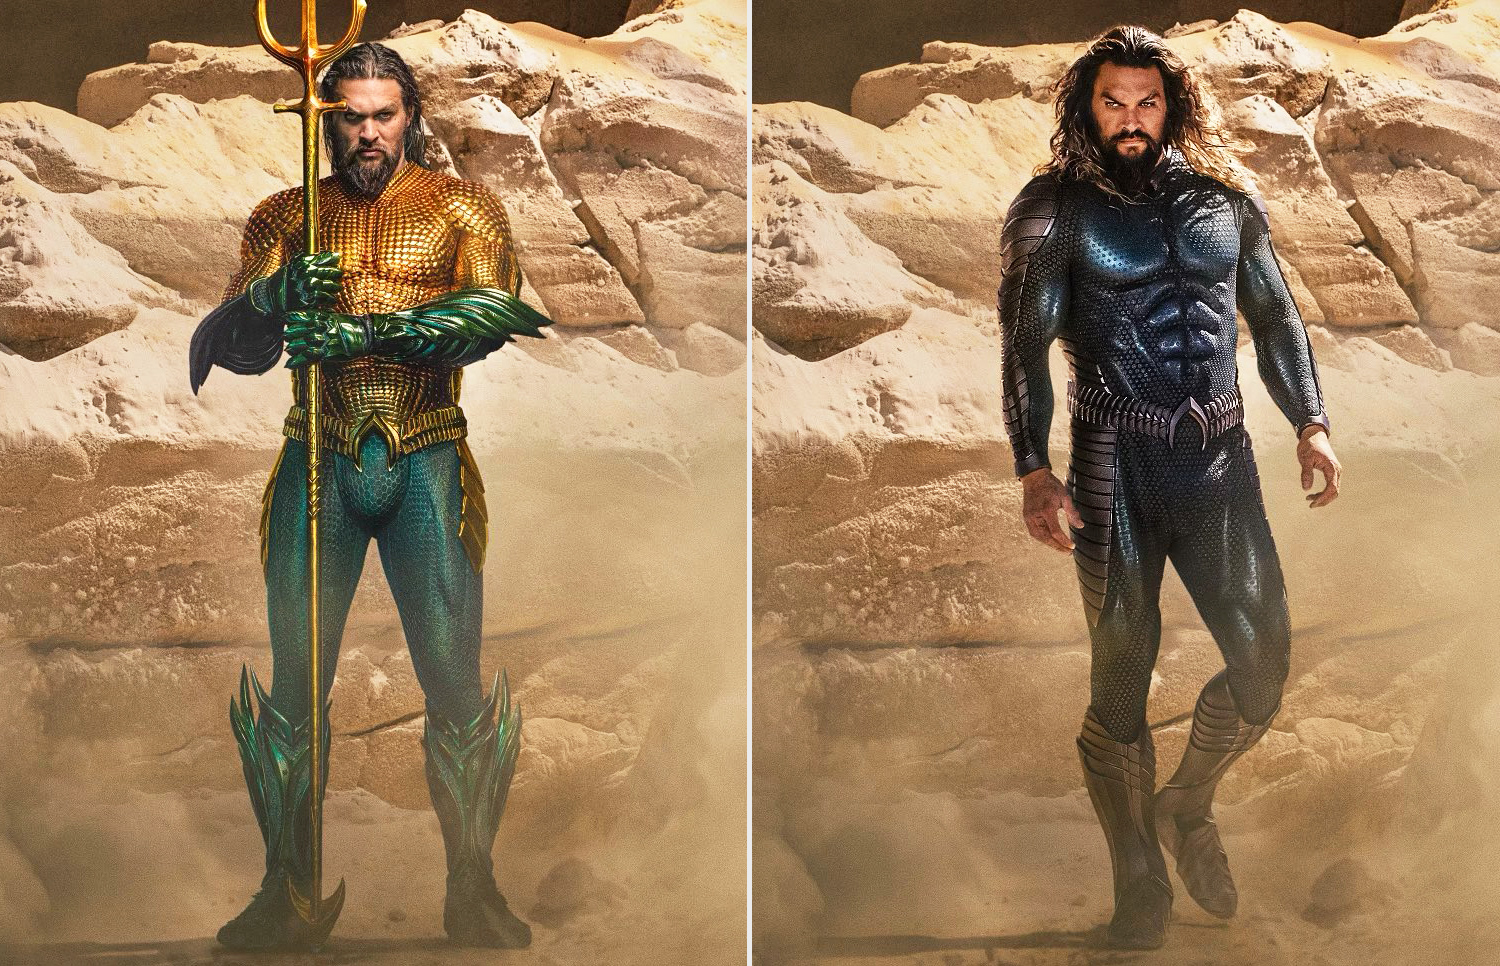 Jason Momoa Reveals New Look For Aquaman 2: 'New Suit. More Action'